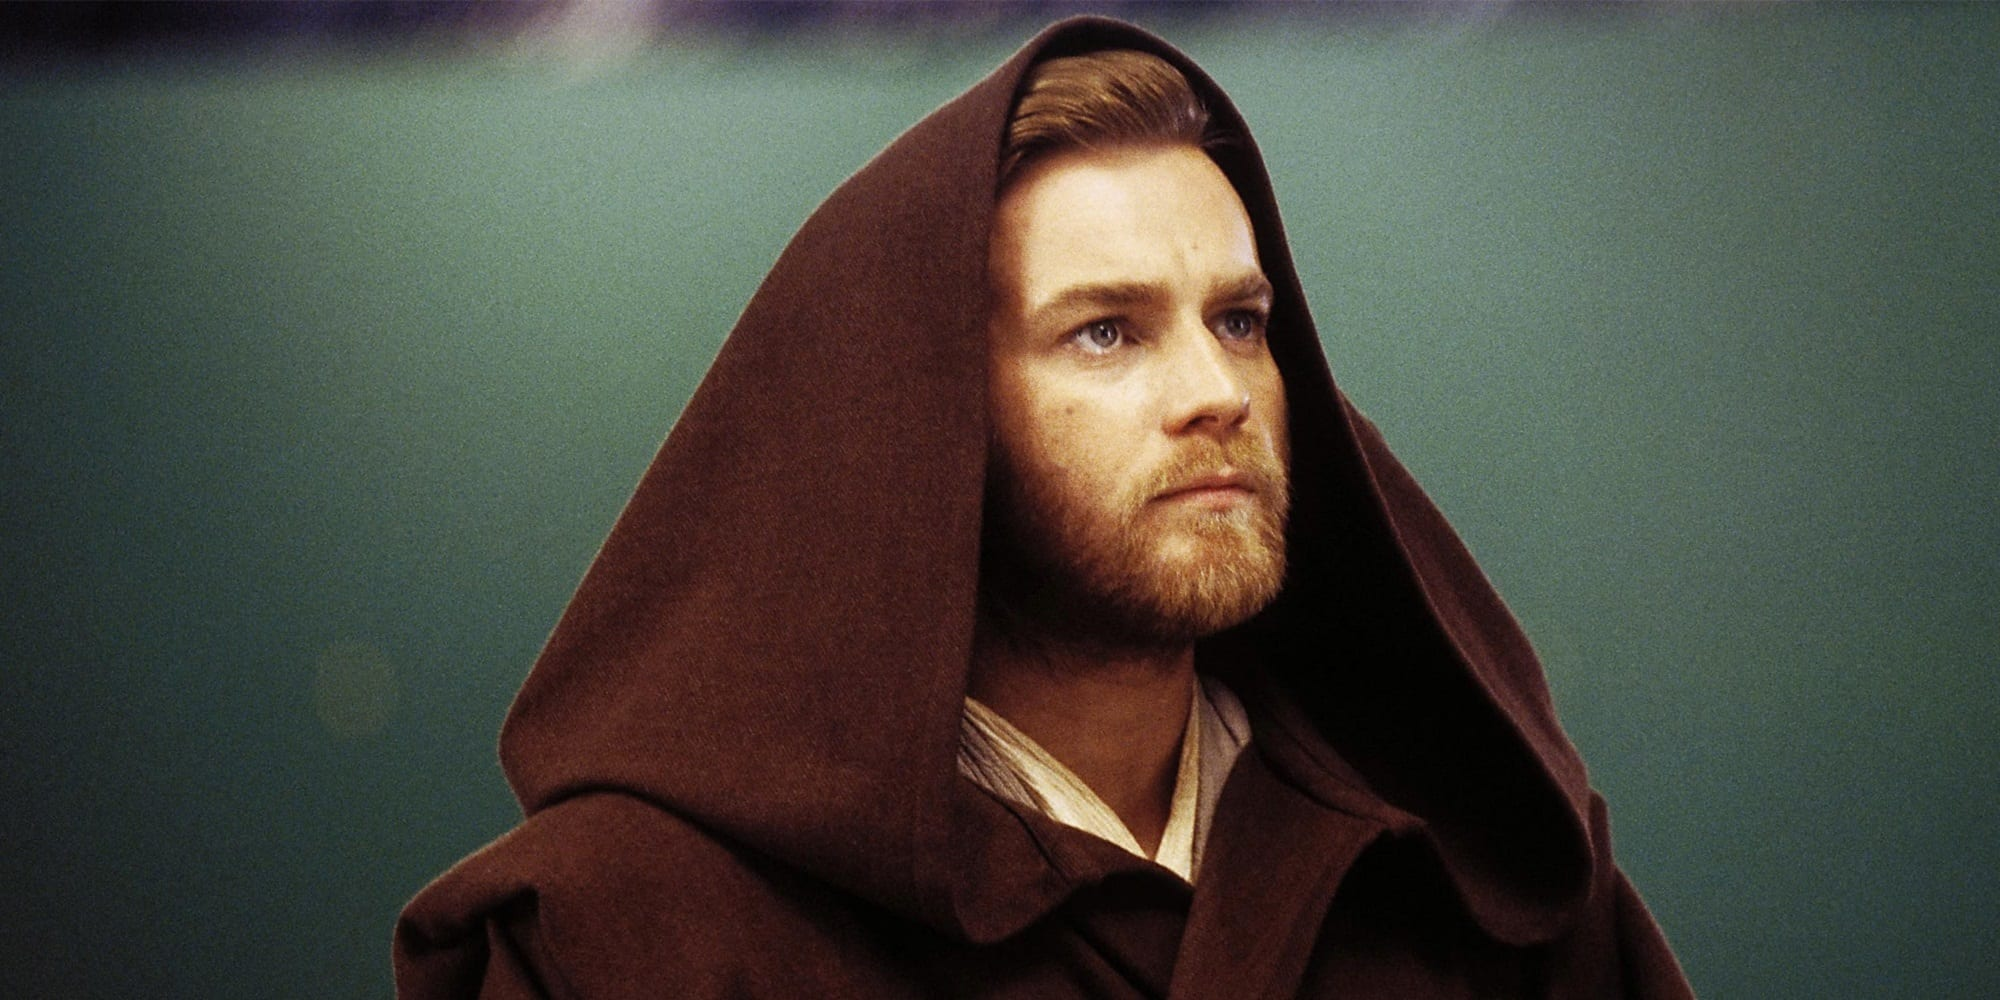 Obi-Wan Kenobi Series to Begin Filming Featured